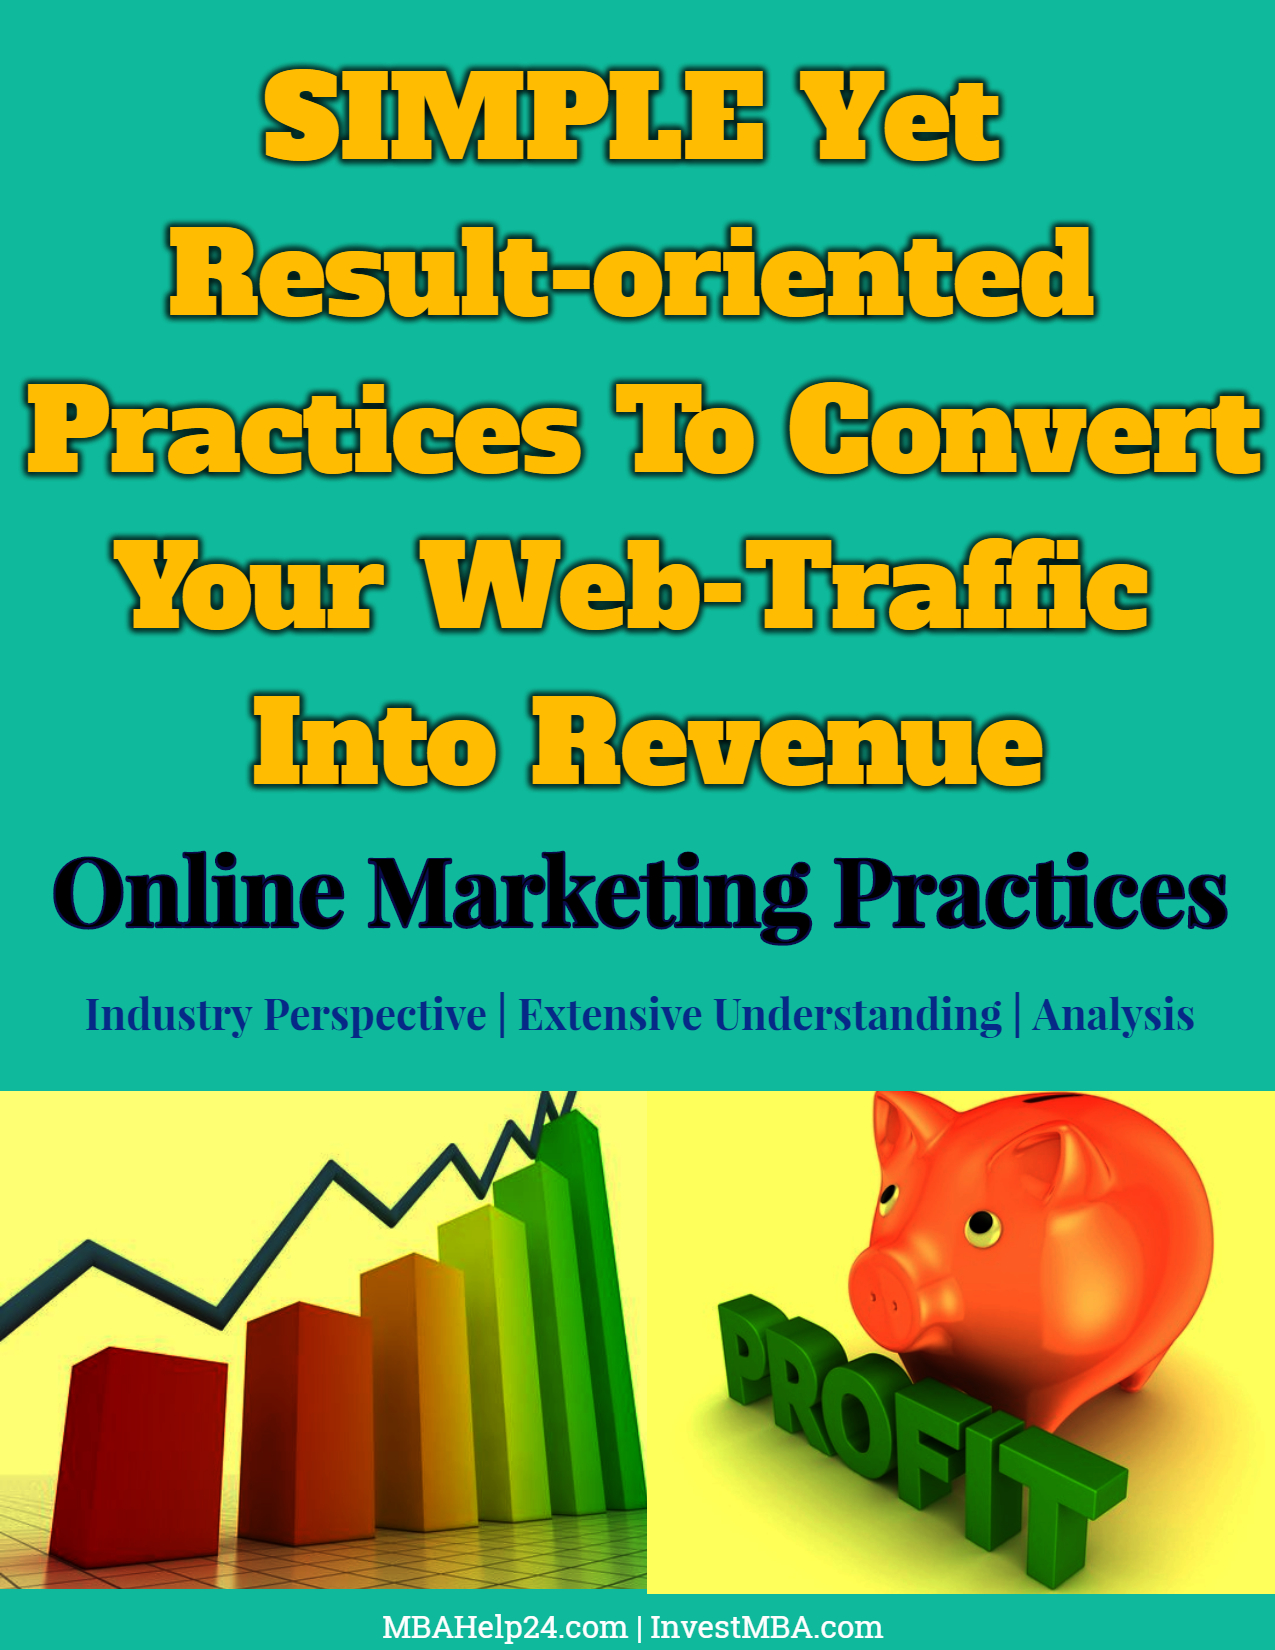 SIMPLE Yet Result-oriented Practices To Convert Your Web-Traffic Into Revenue web-traffic SIMPLE Yet Result-oriented Practices To Convert Your Web-Traffic Into Revenue SIMPLE Yet Result oriented Practices To Convert Your Web Traffic Into Revenue